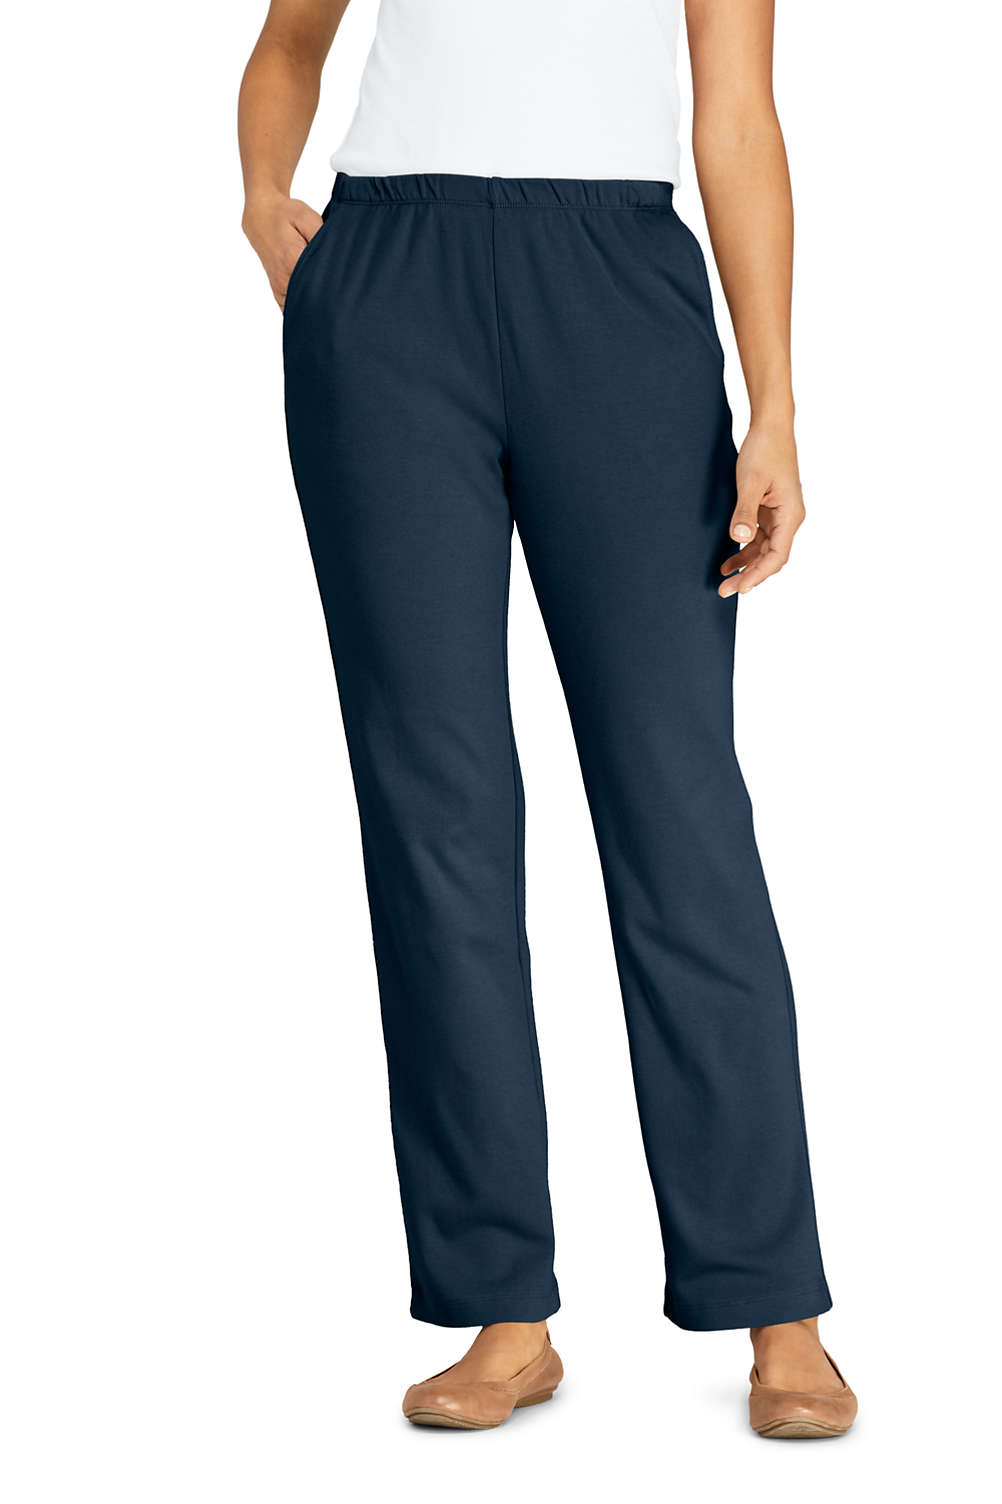 f5339a4c499 Women's Sport Knit High Rise Elastic Waist Pull On Pants from Lands' End